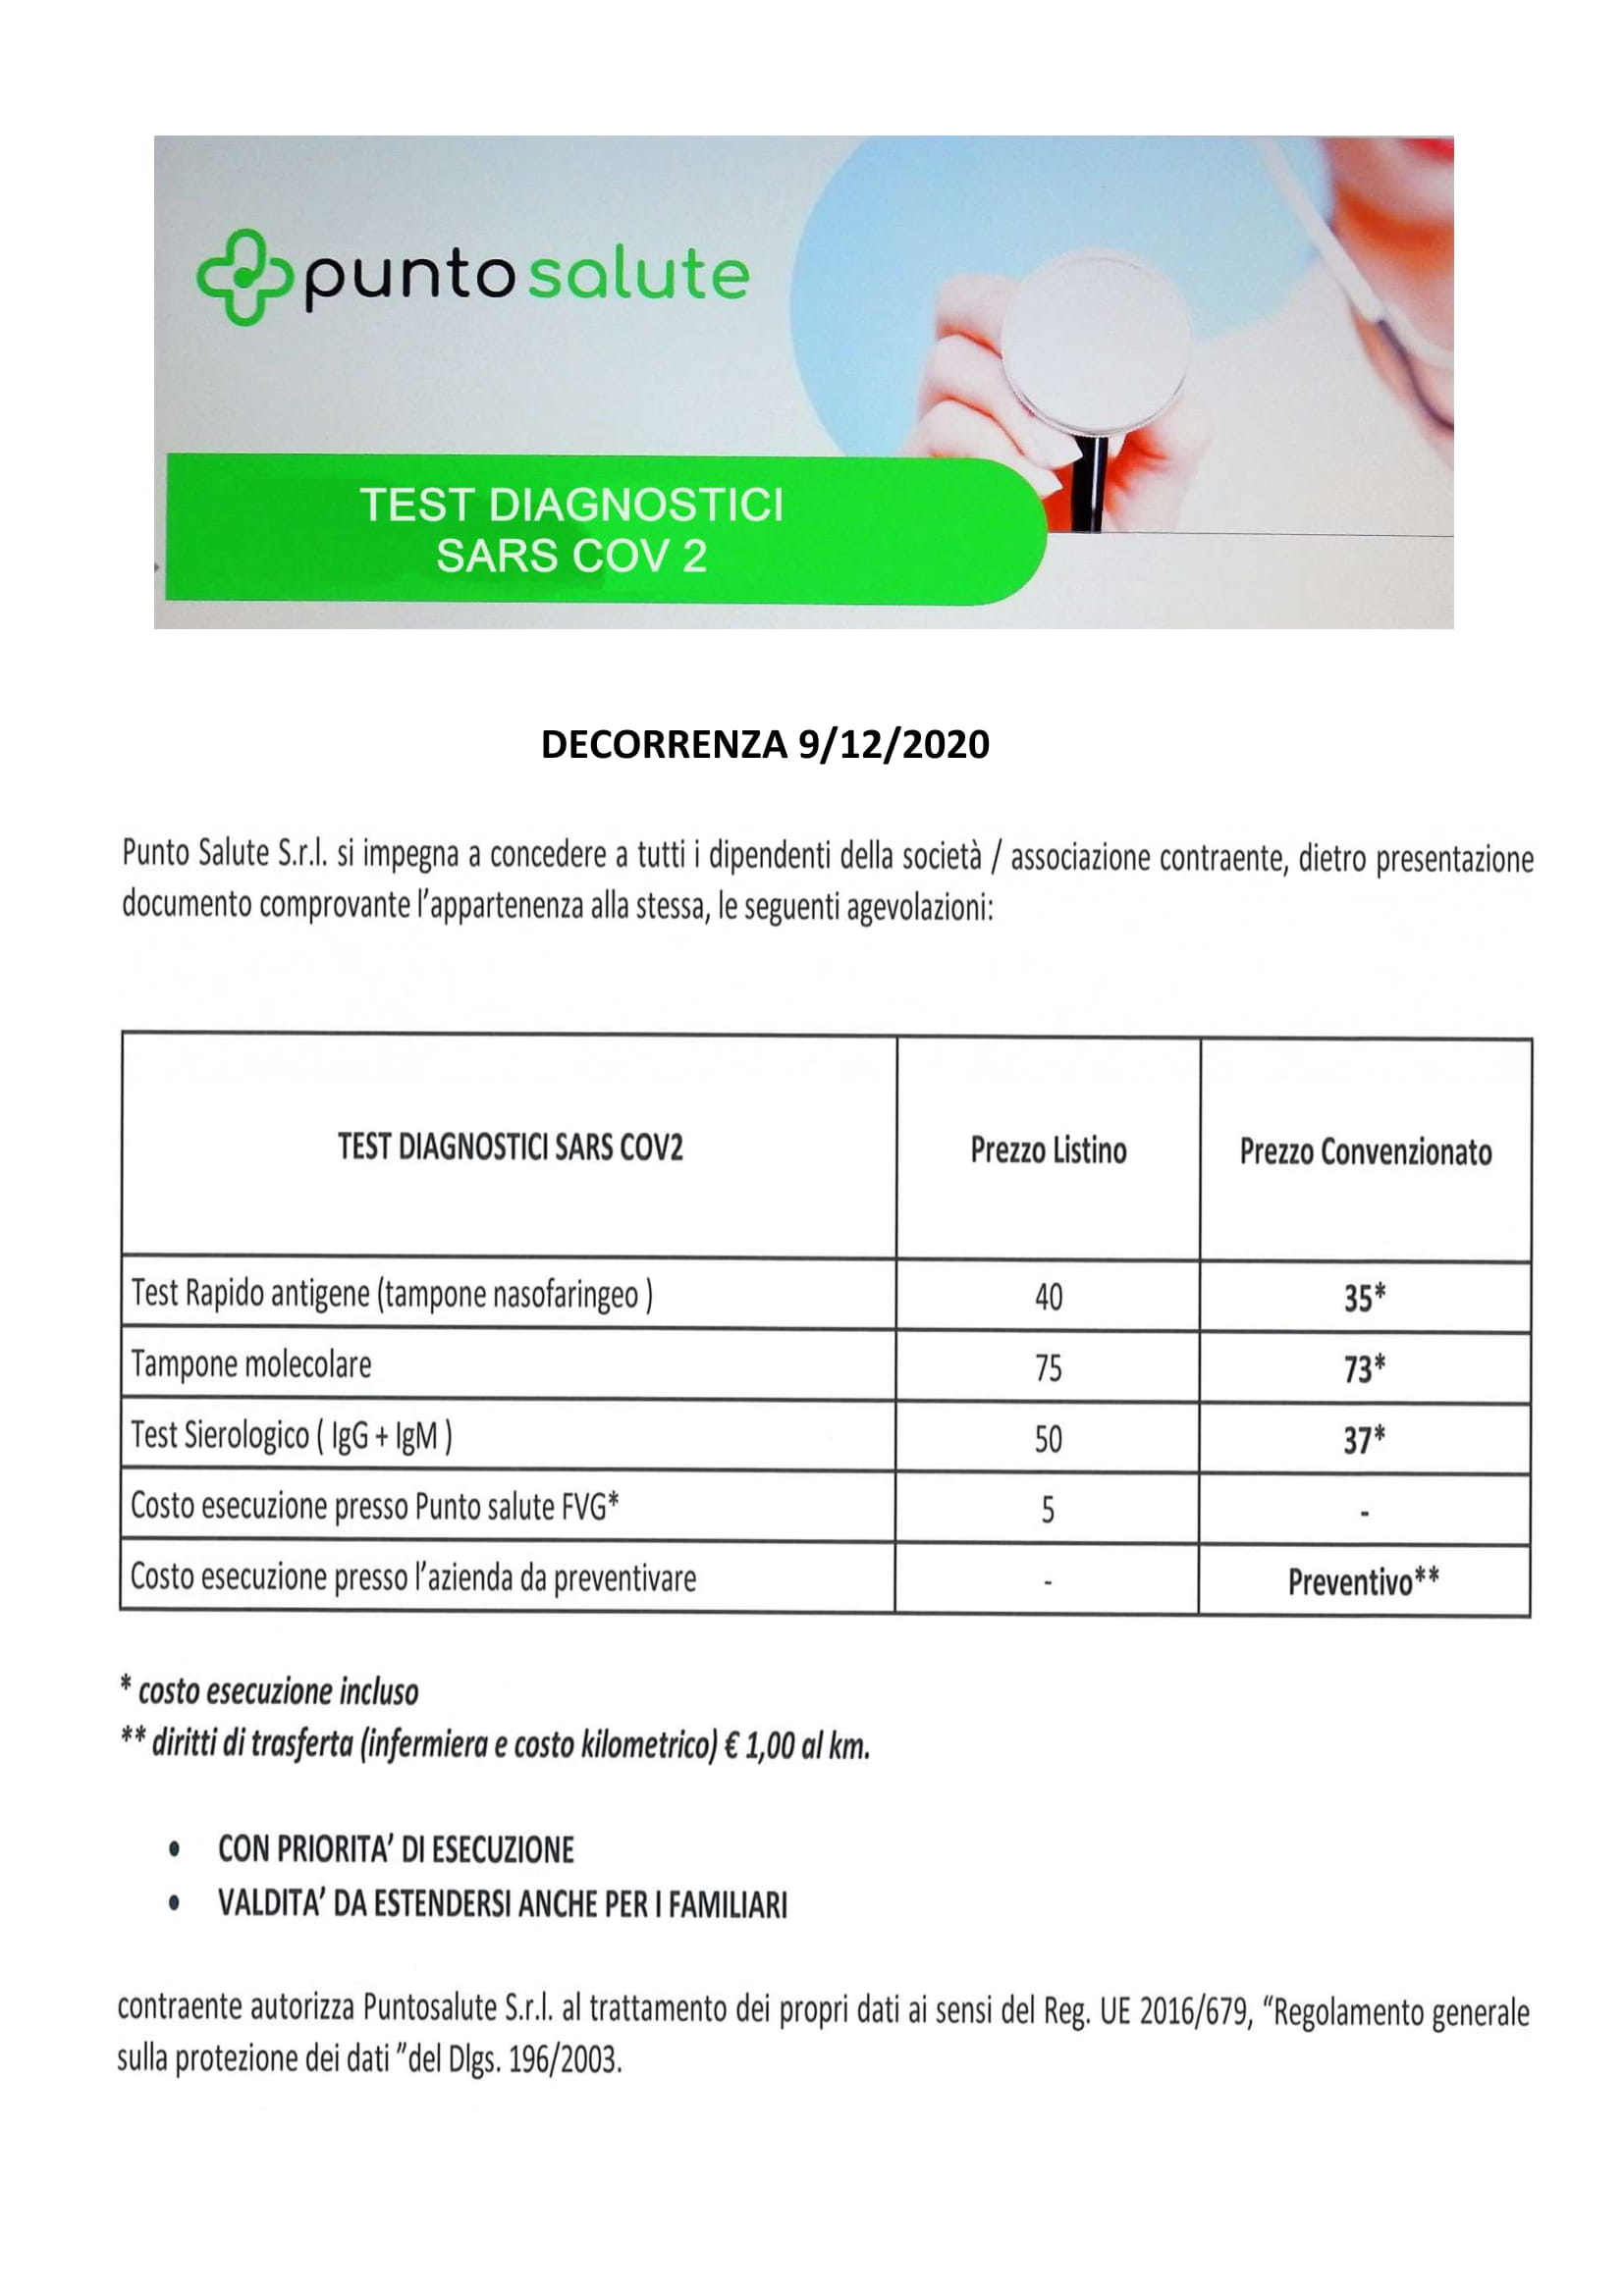 Test diagnostici Sars Cov-2